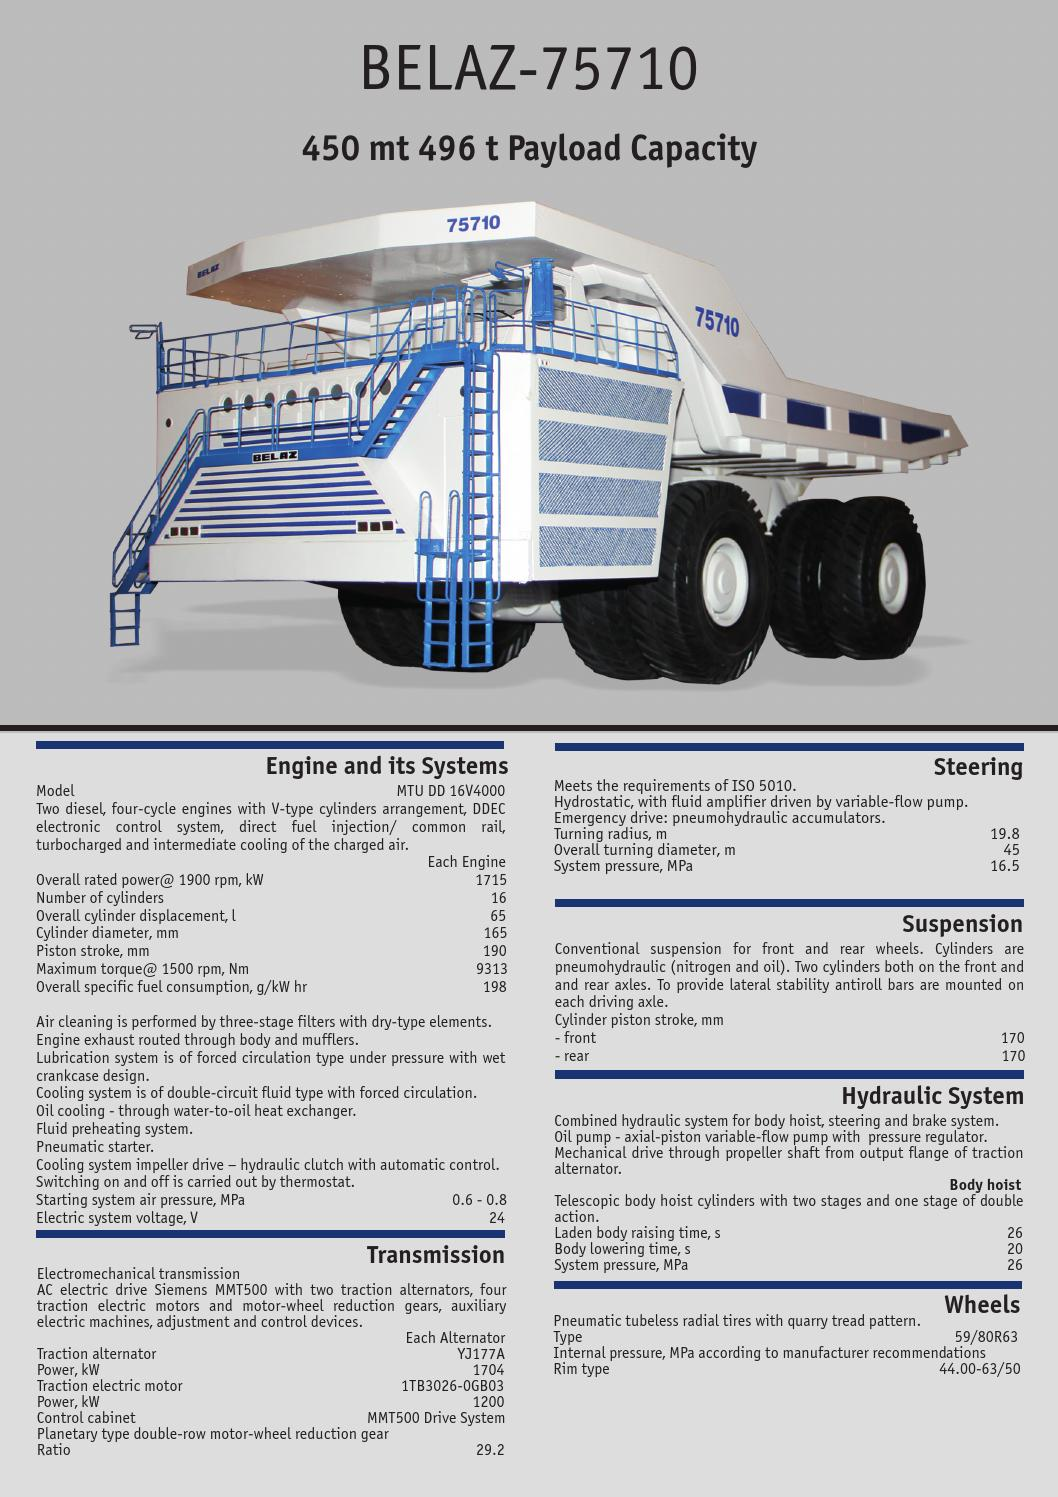 E likewise Air Flo Dump W Spreader X further Standard Box Type Tipper With Underbody Tipping System X also Refuse Front Schem also Dump. on dump truck hydraulic system